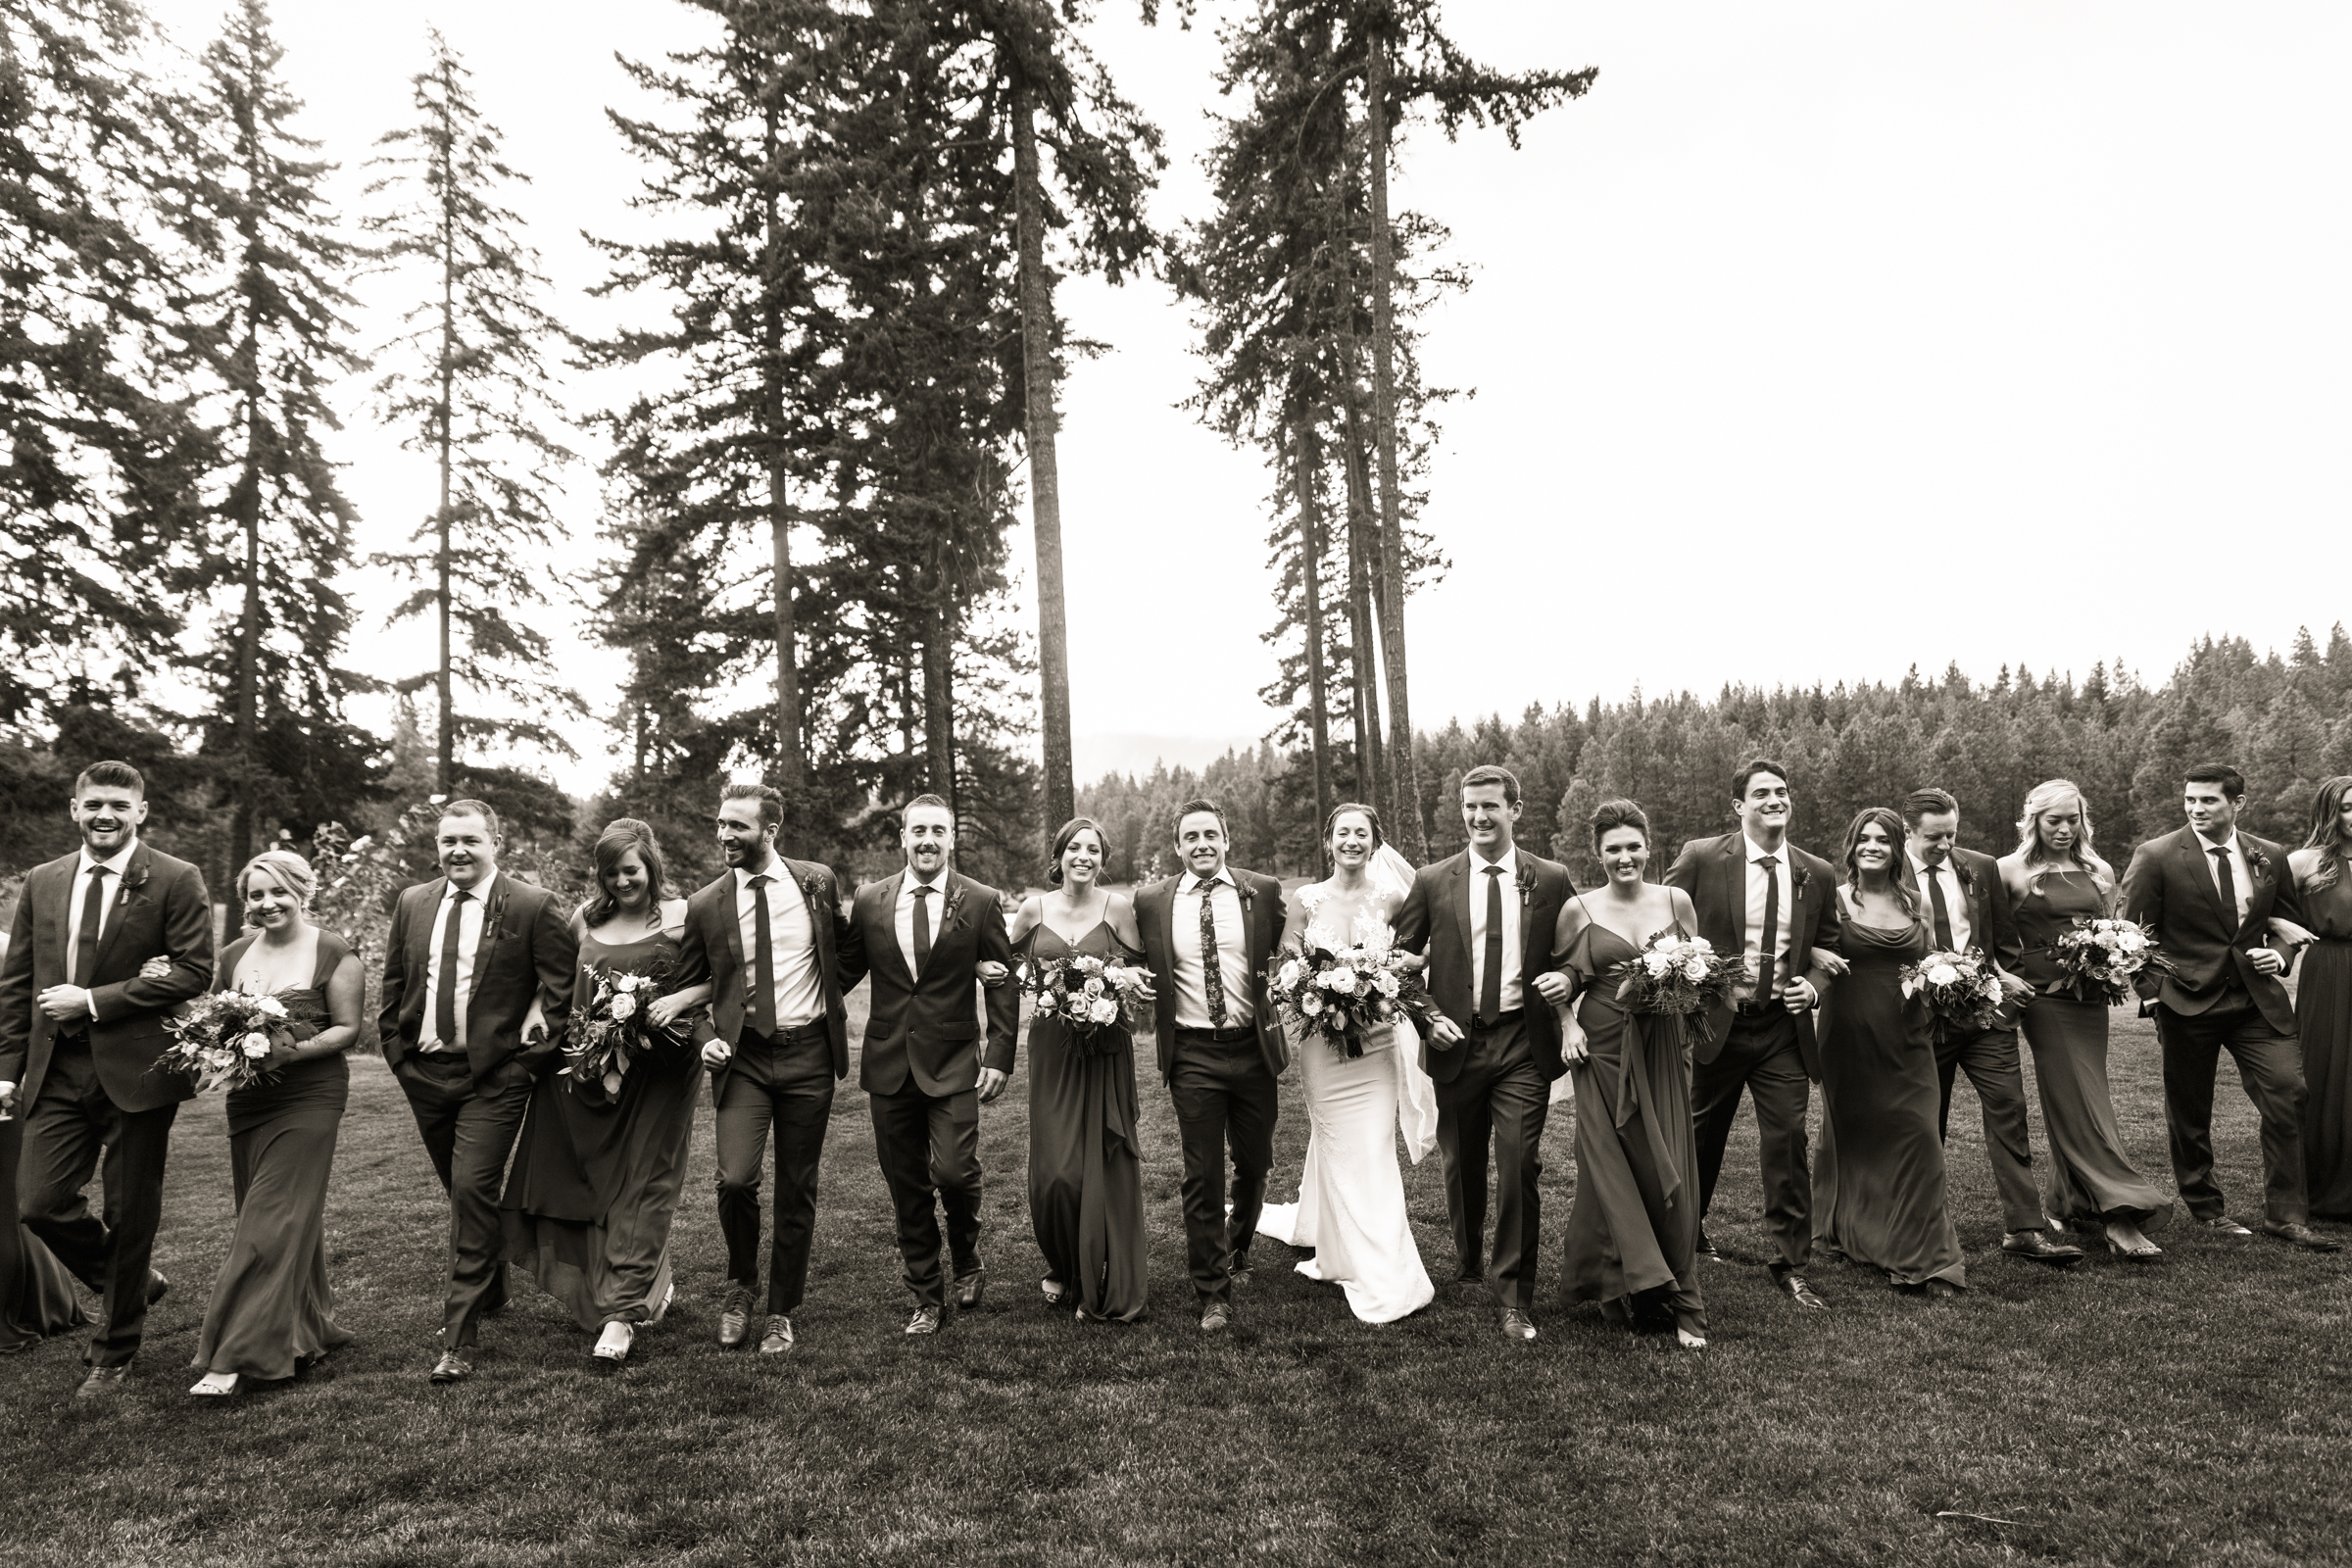 Vintage looking portrait of bridal party at forst wedding - photo by Stephanie Cristalli Photography